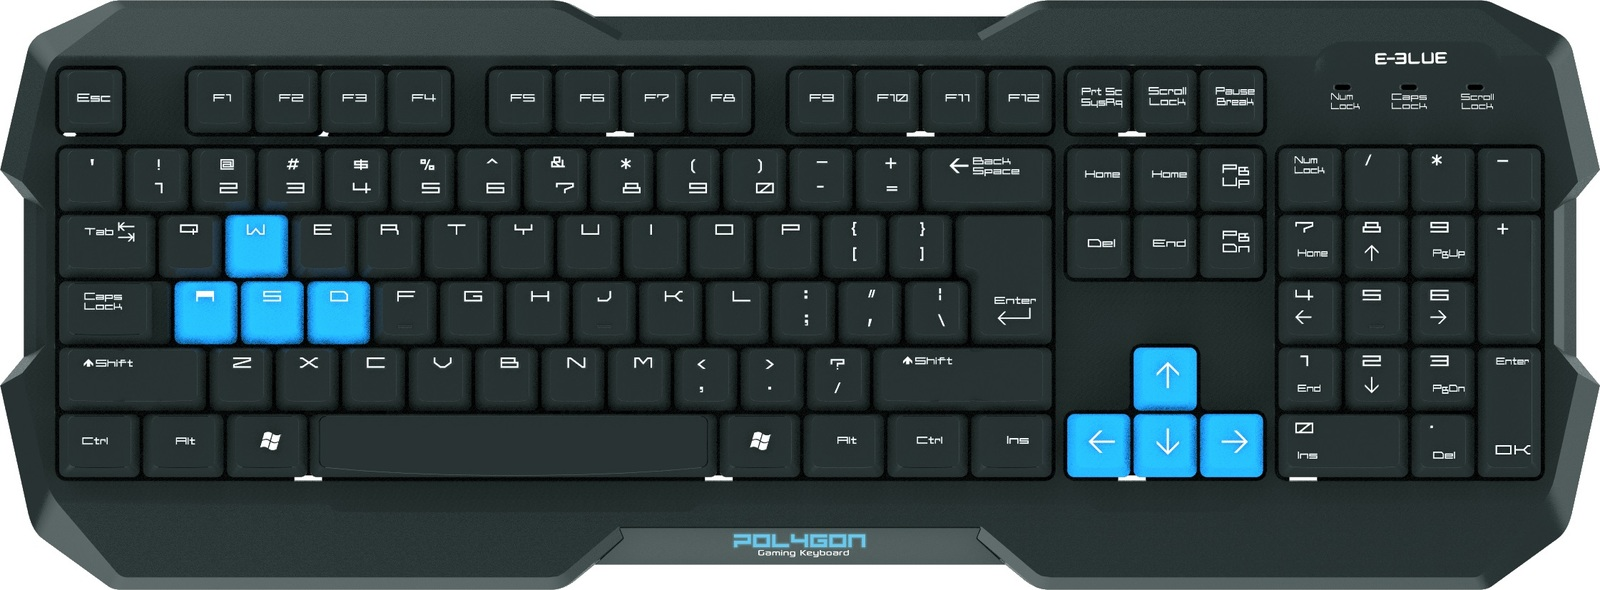 E-Blue Polygon Gaming Keyboard for PC image